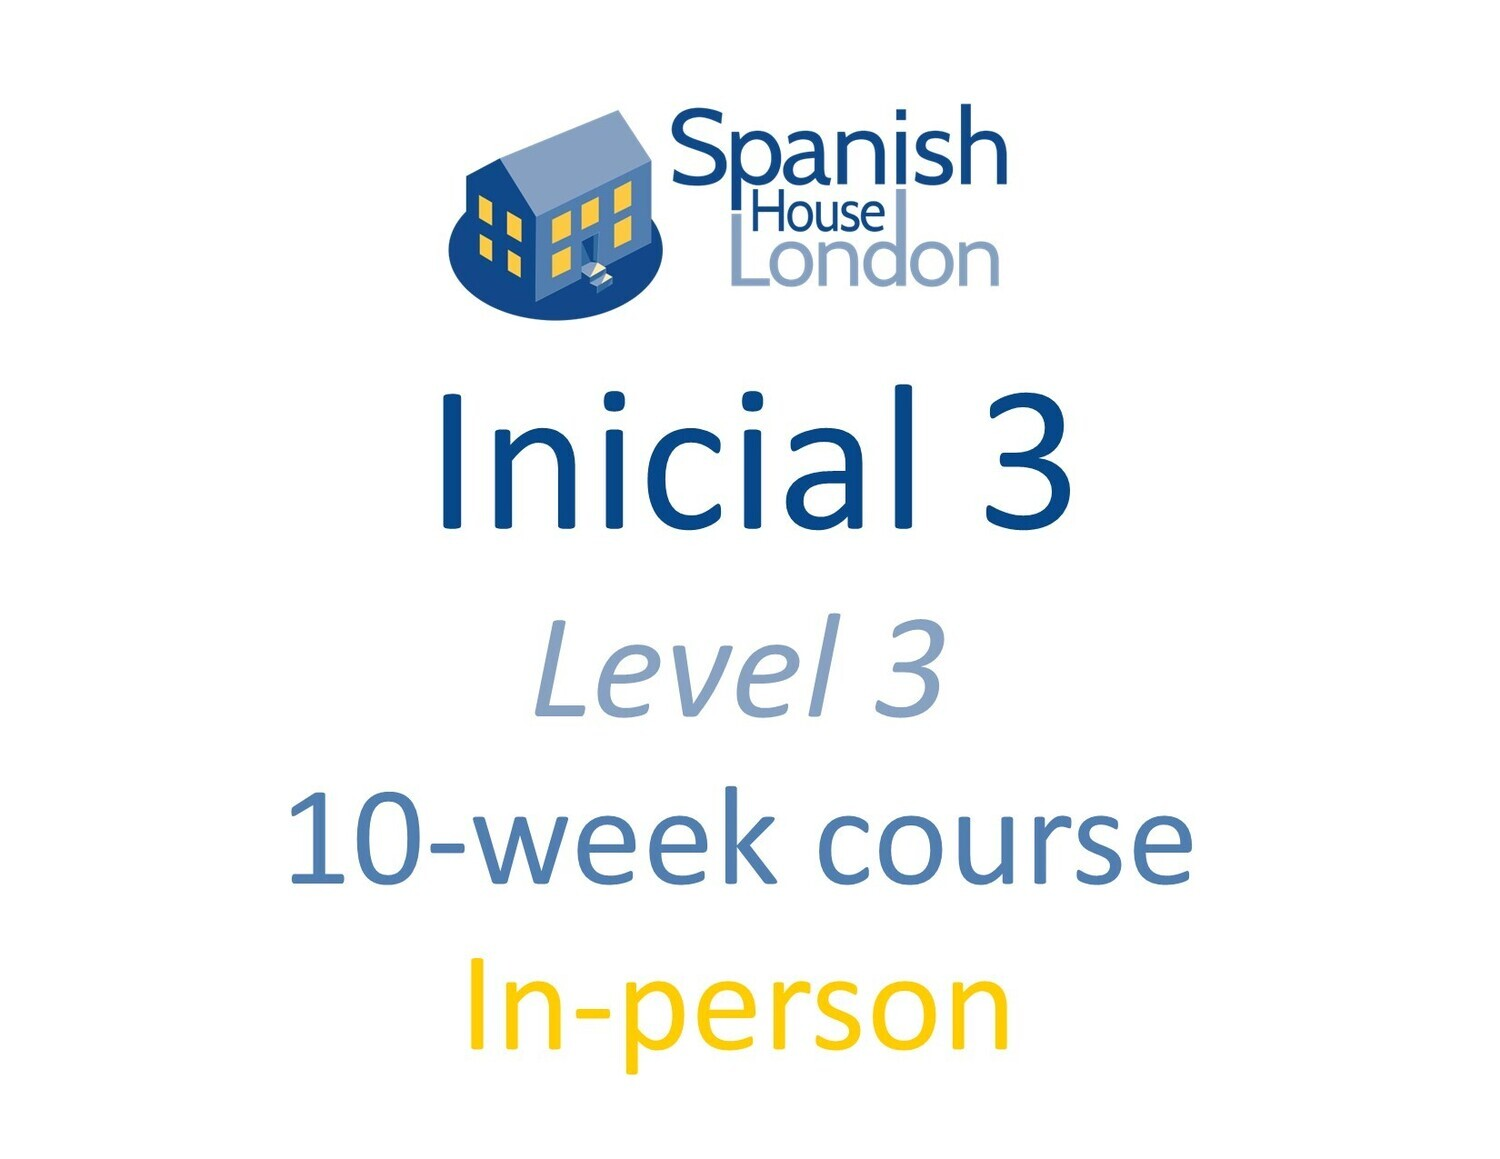 Inicial 3 Course starting on 1st December at 6pm in Euston / King's Cross